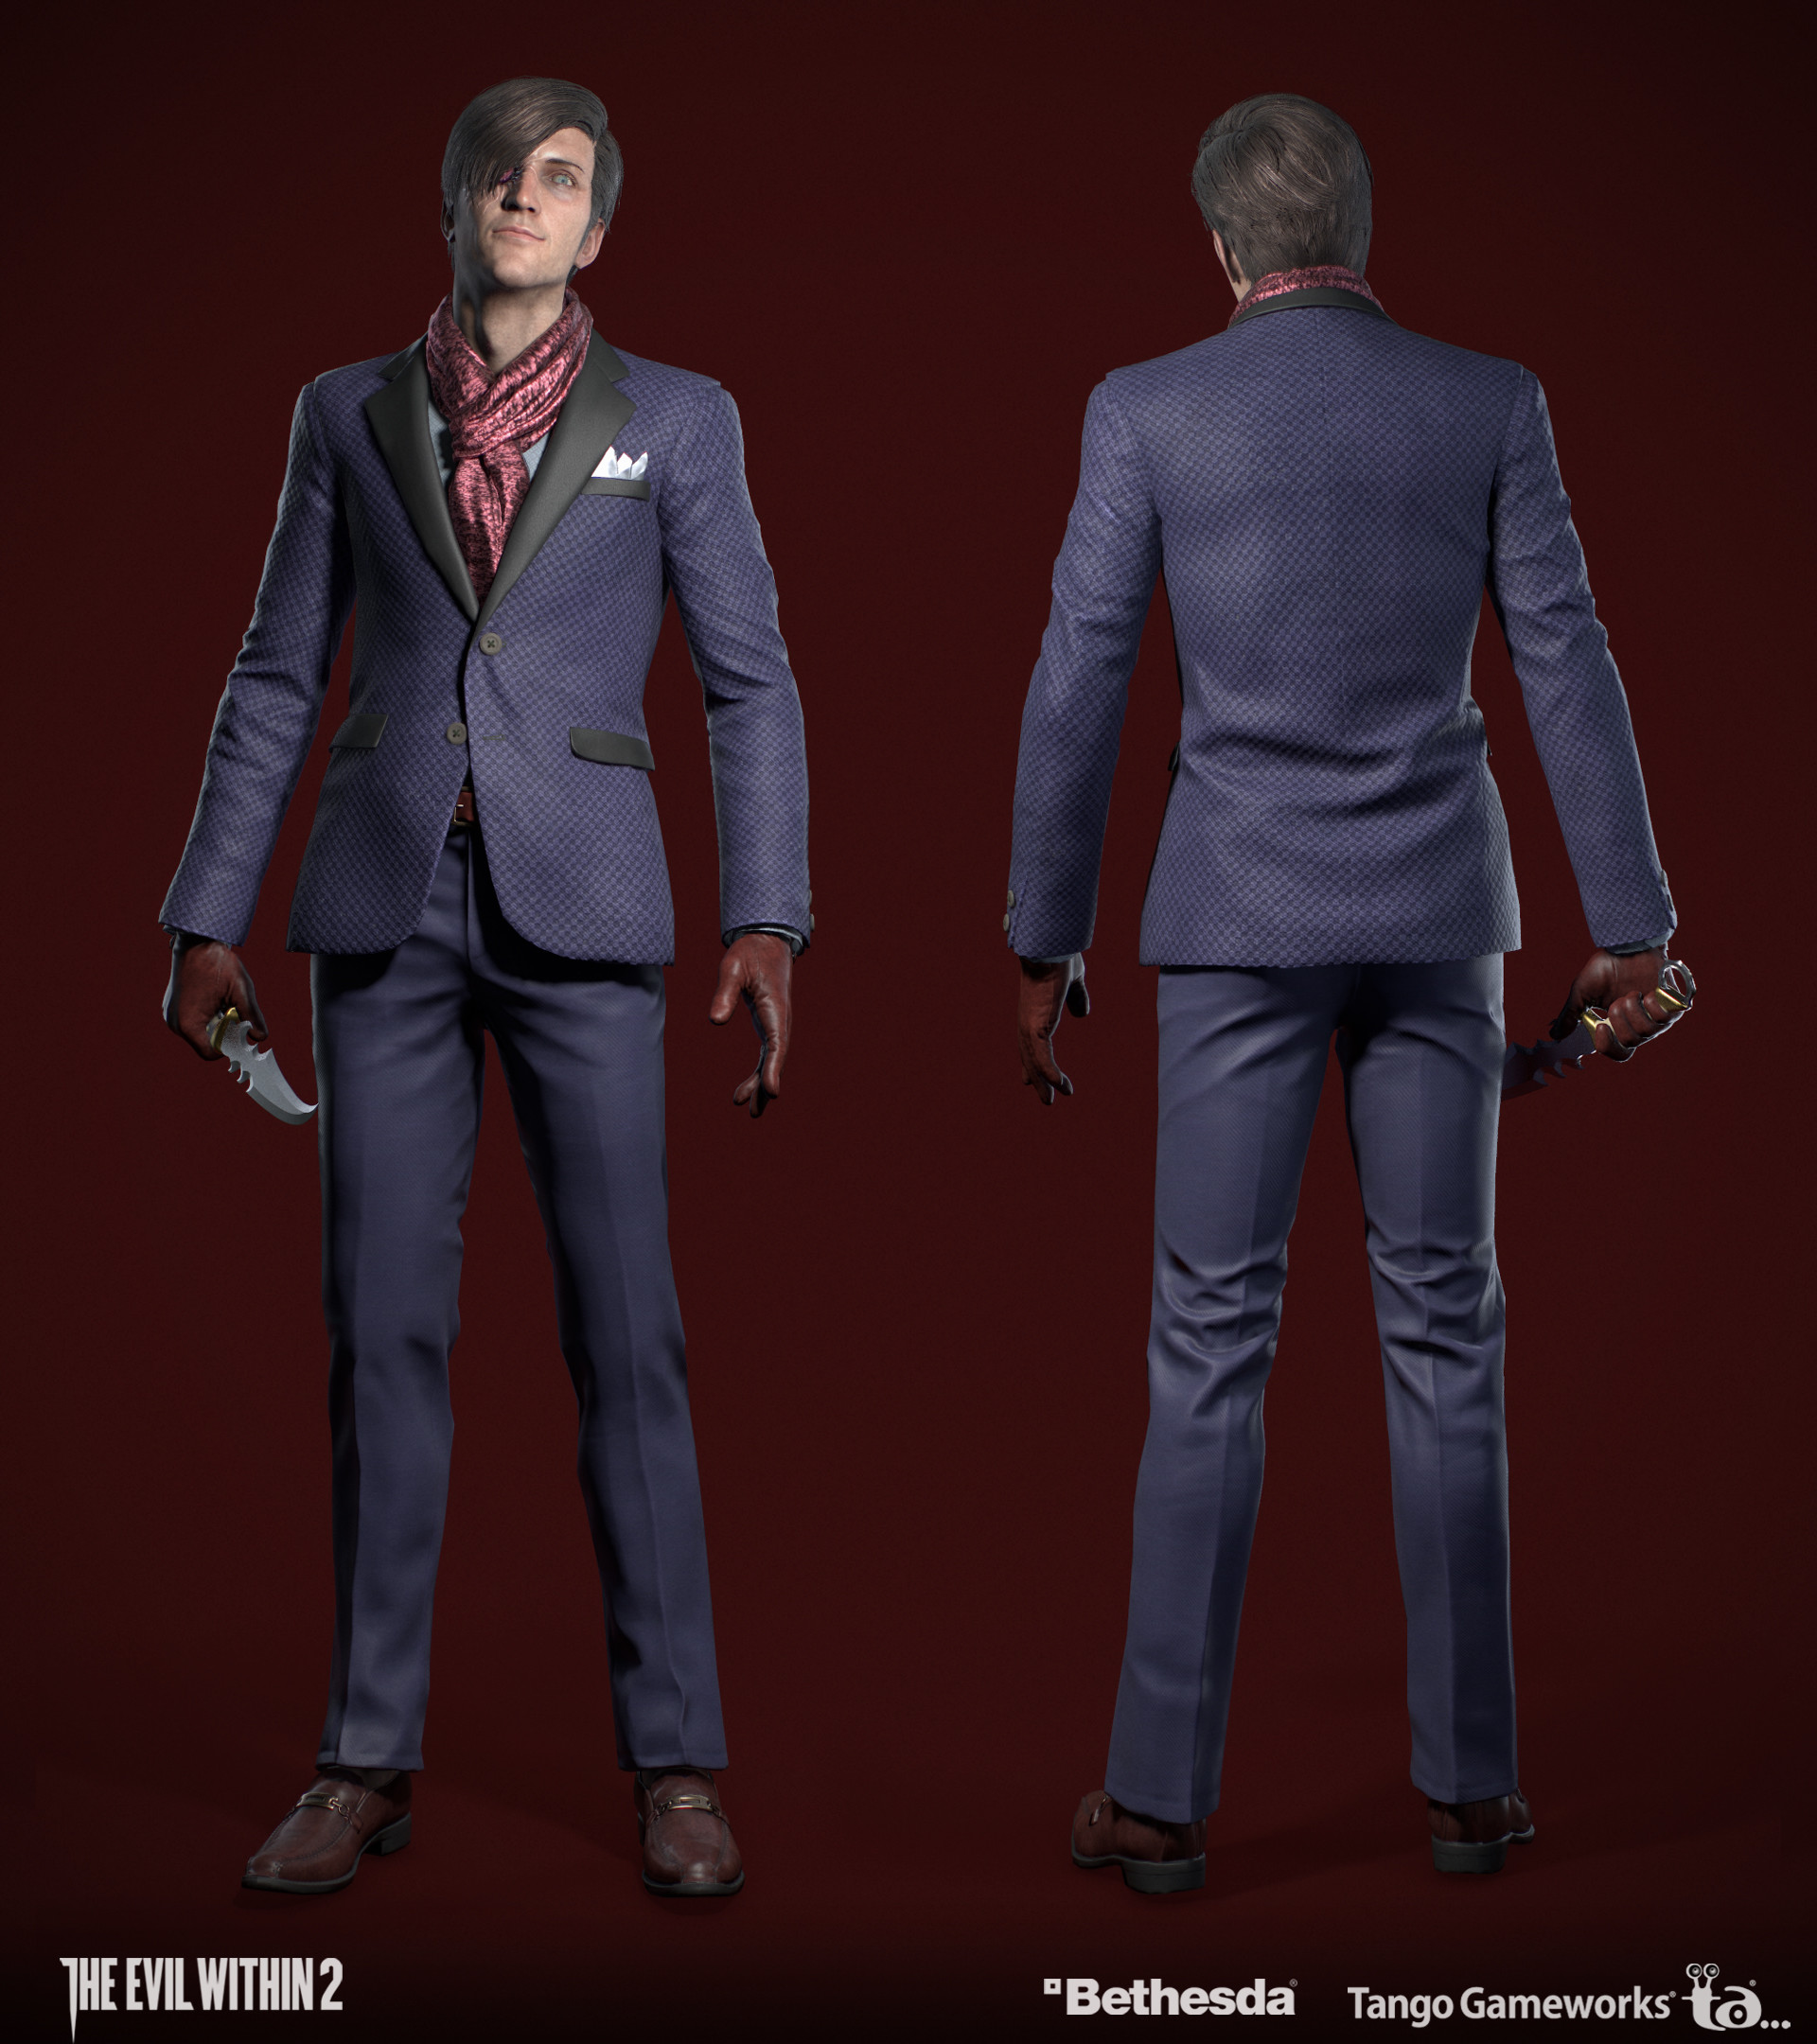 The Evil Within 2  (Bethesda, 2017), Stefano character design by Yoshifumi Hattori